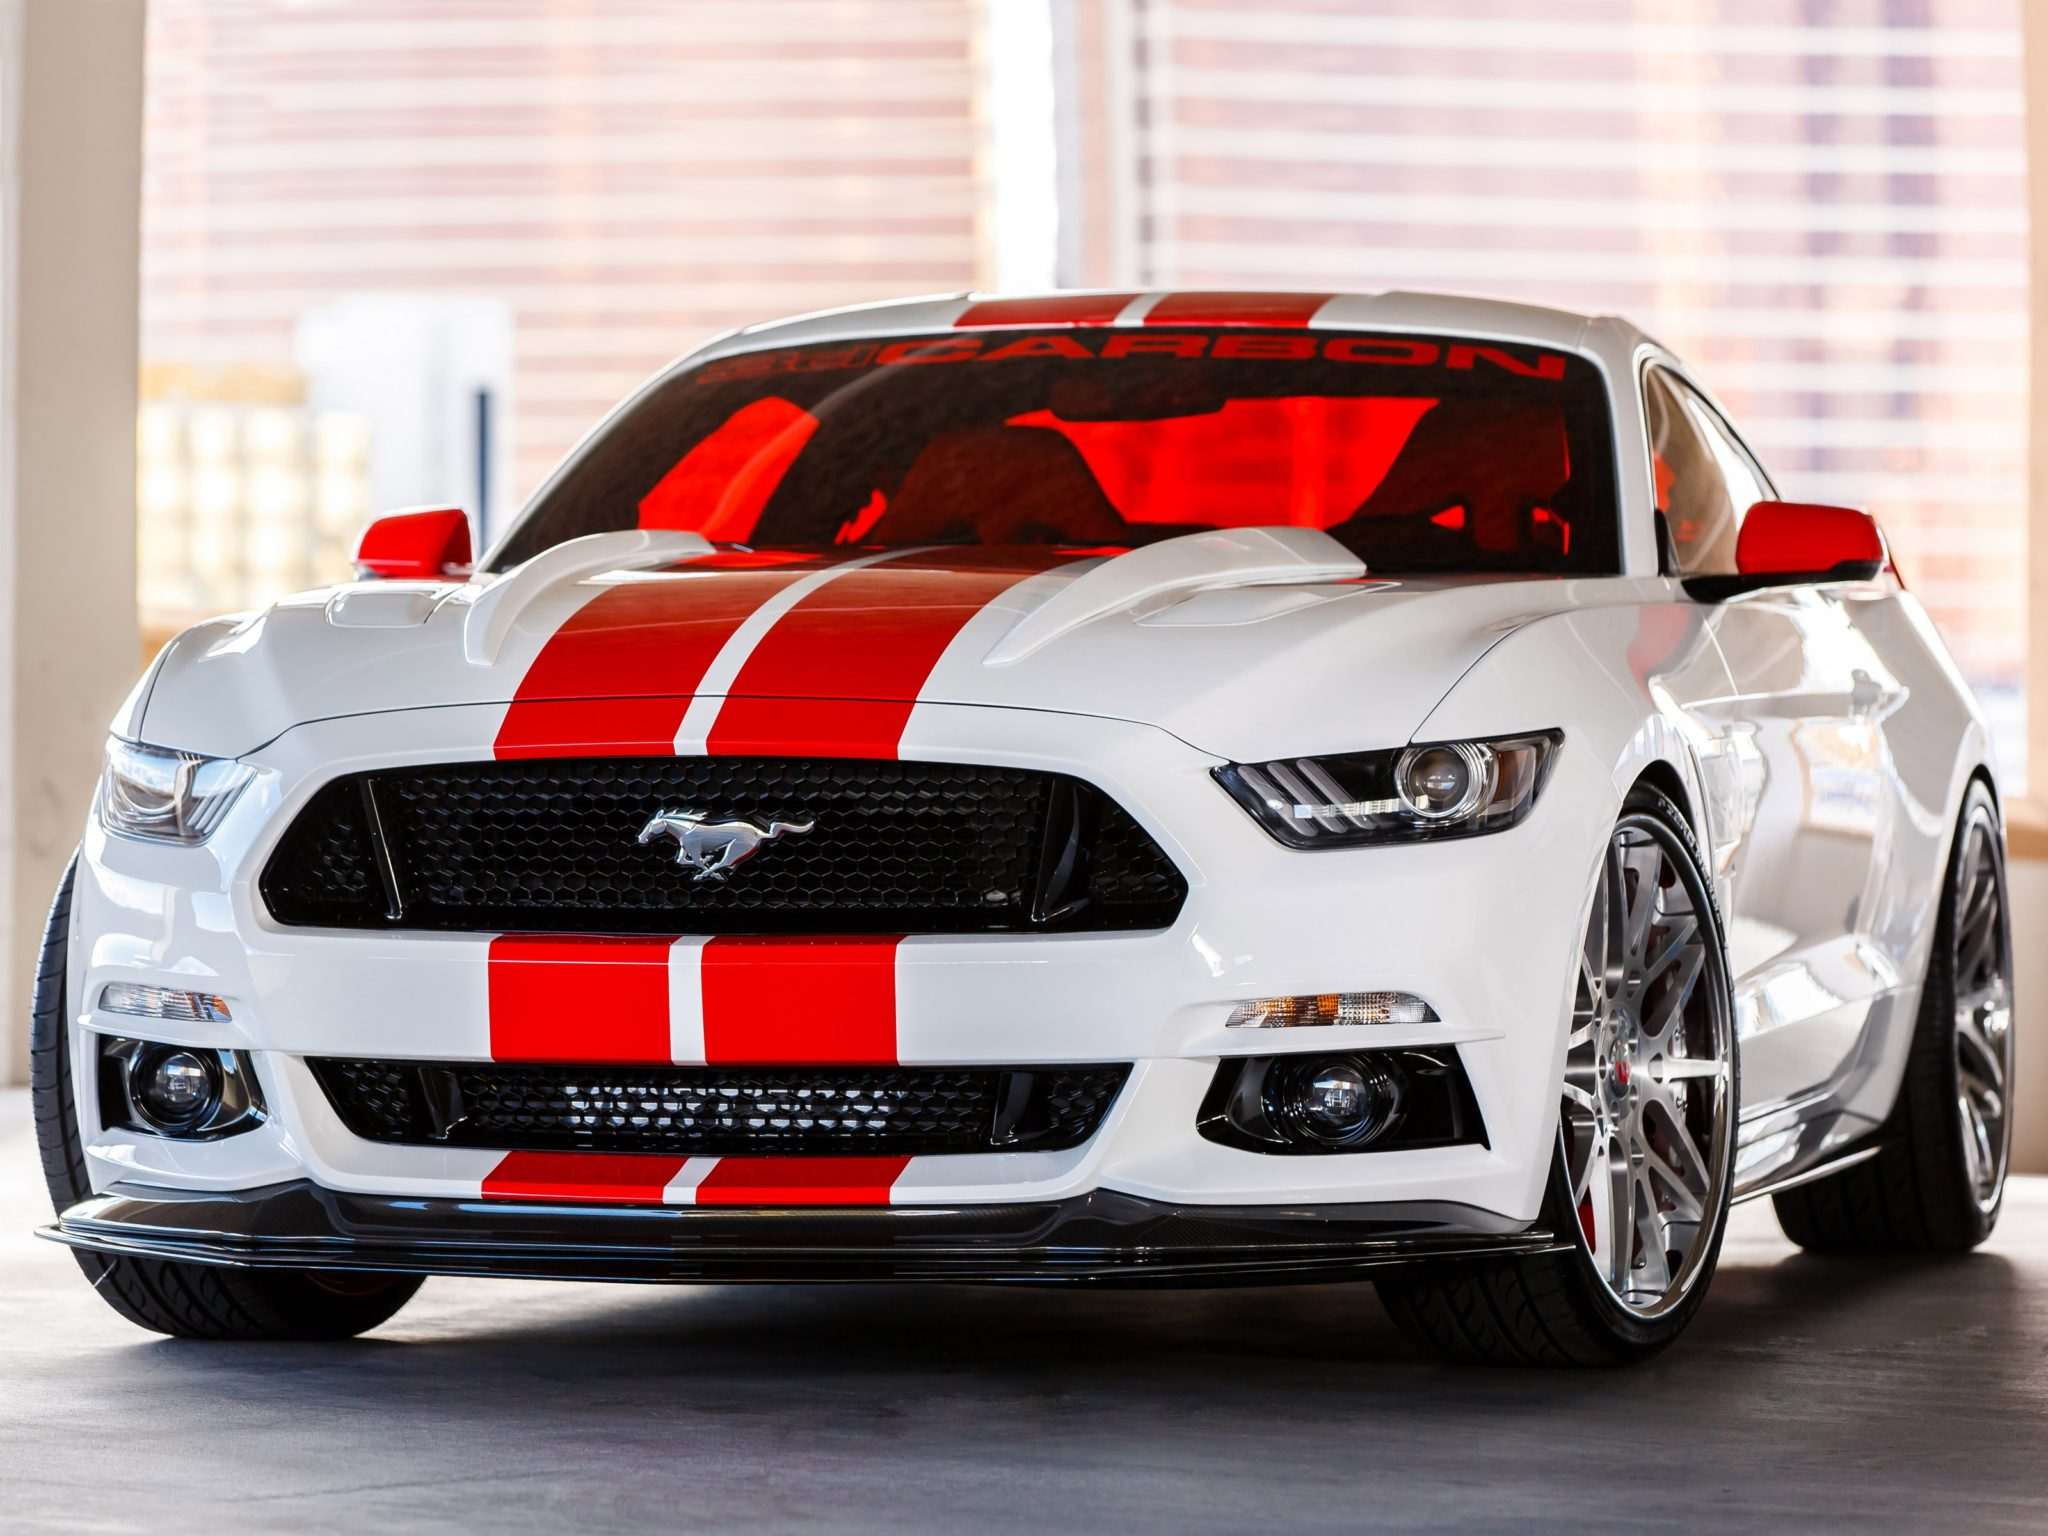 2014 3dcarbon Ford Mustang GT